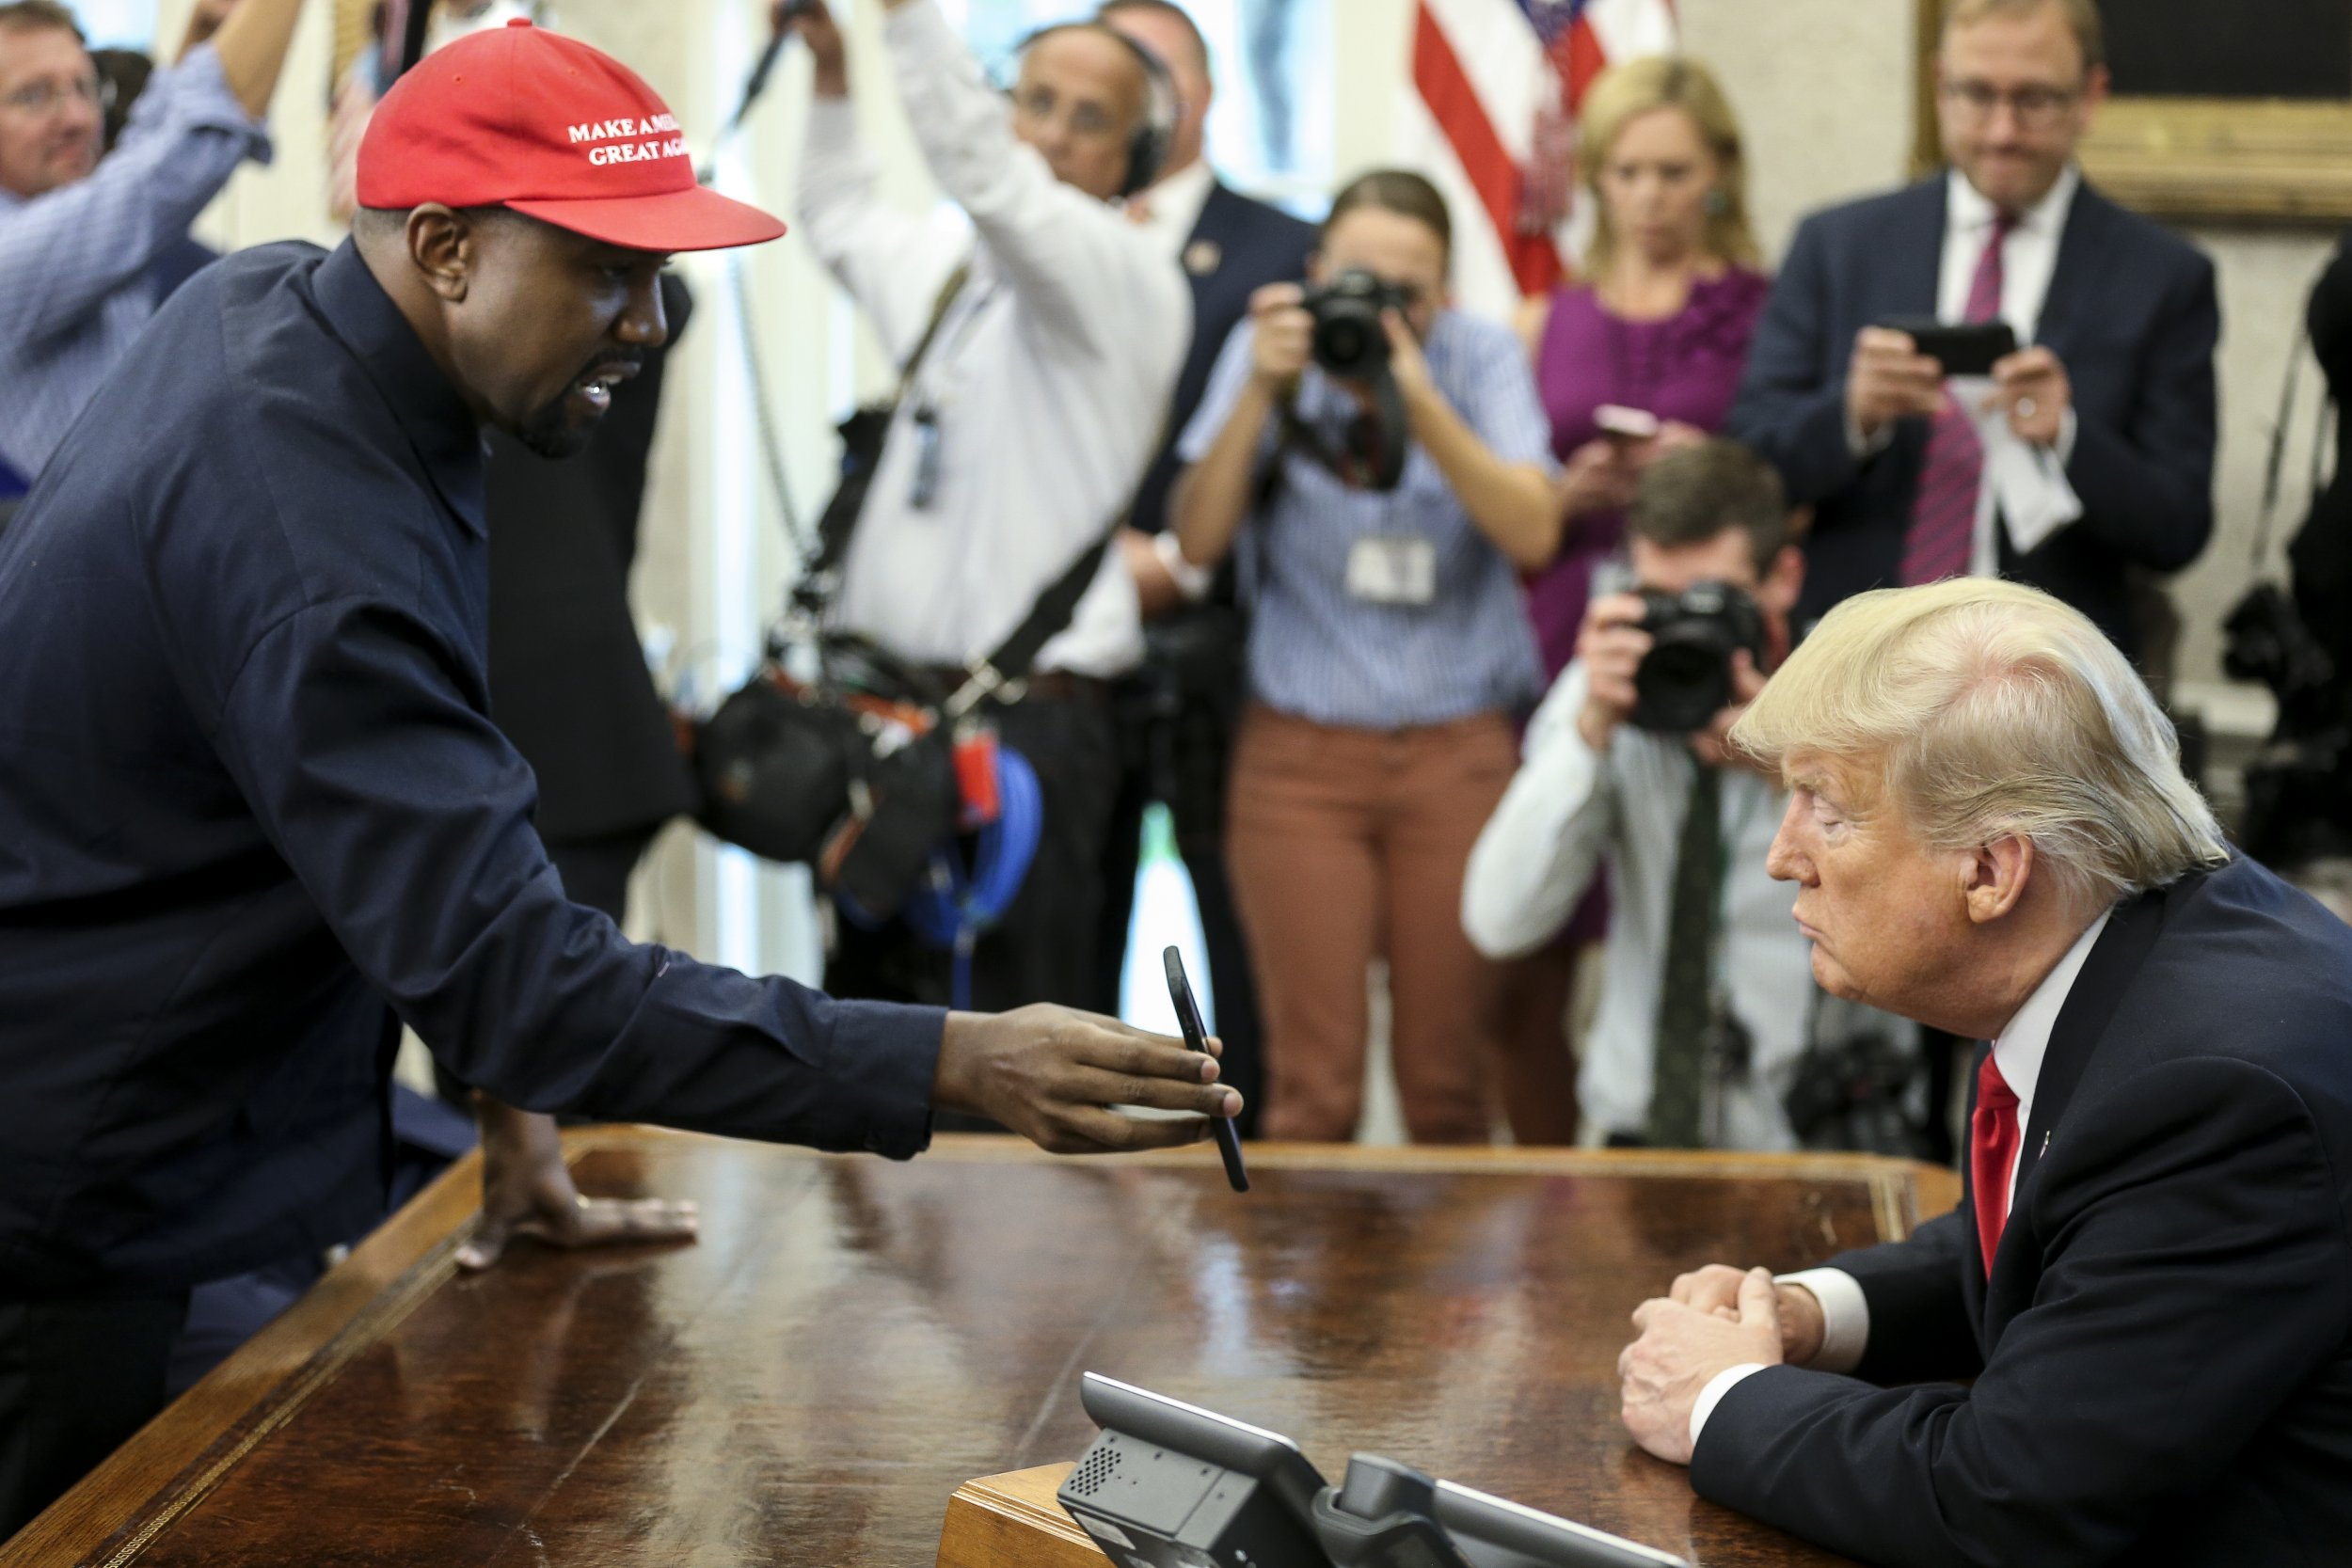 Kanye West accidentally reveals to world his iPhone password is 000000